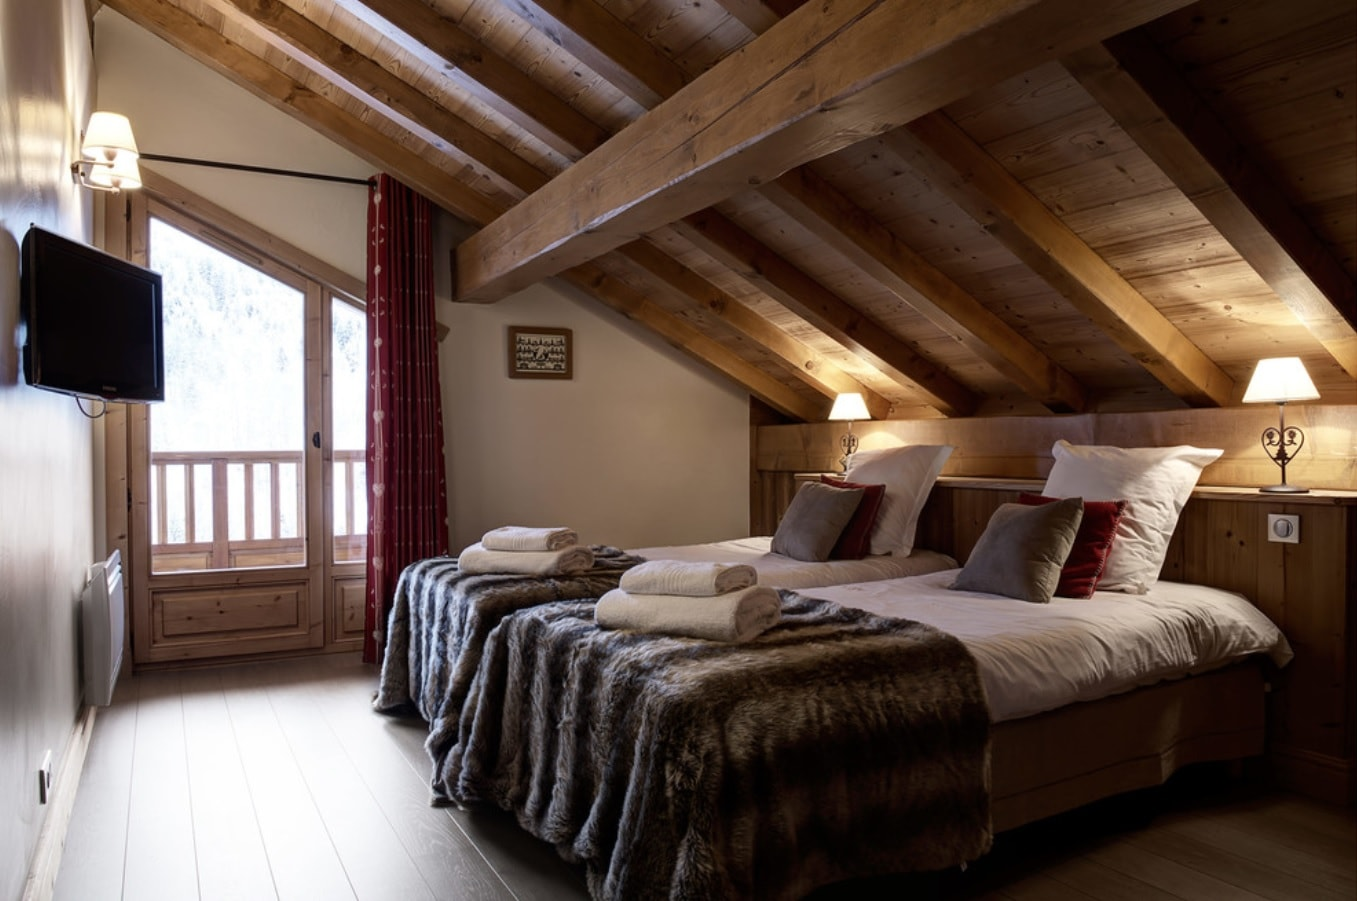 Loft wooden Chalet bedroom with two large beds and massive ceiling beams